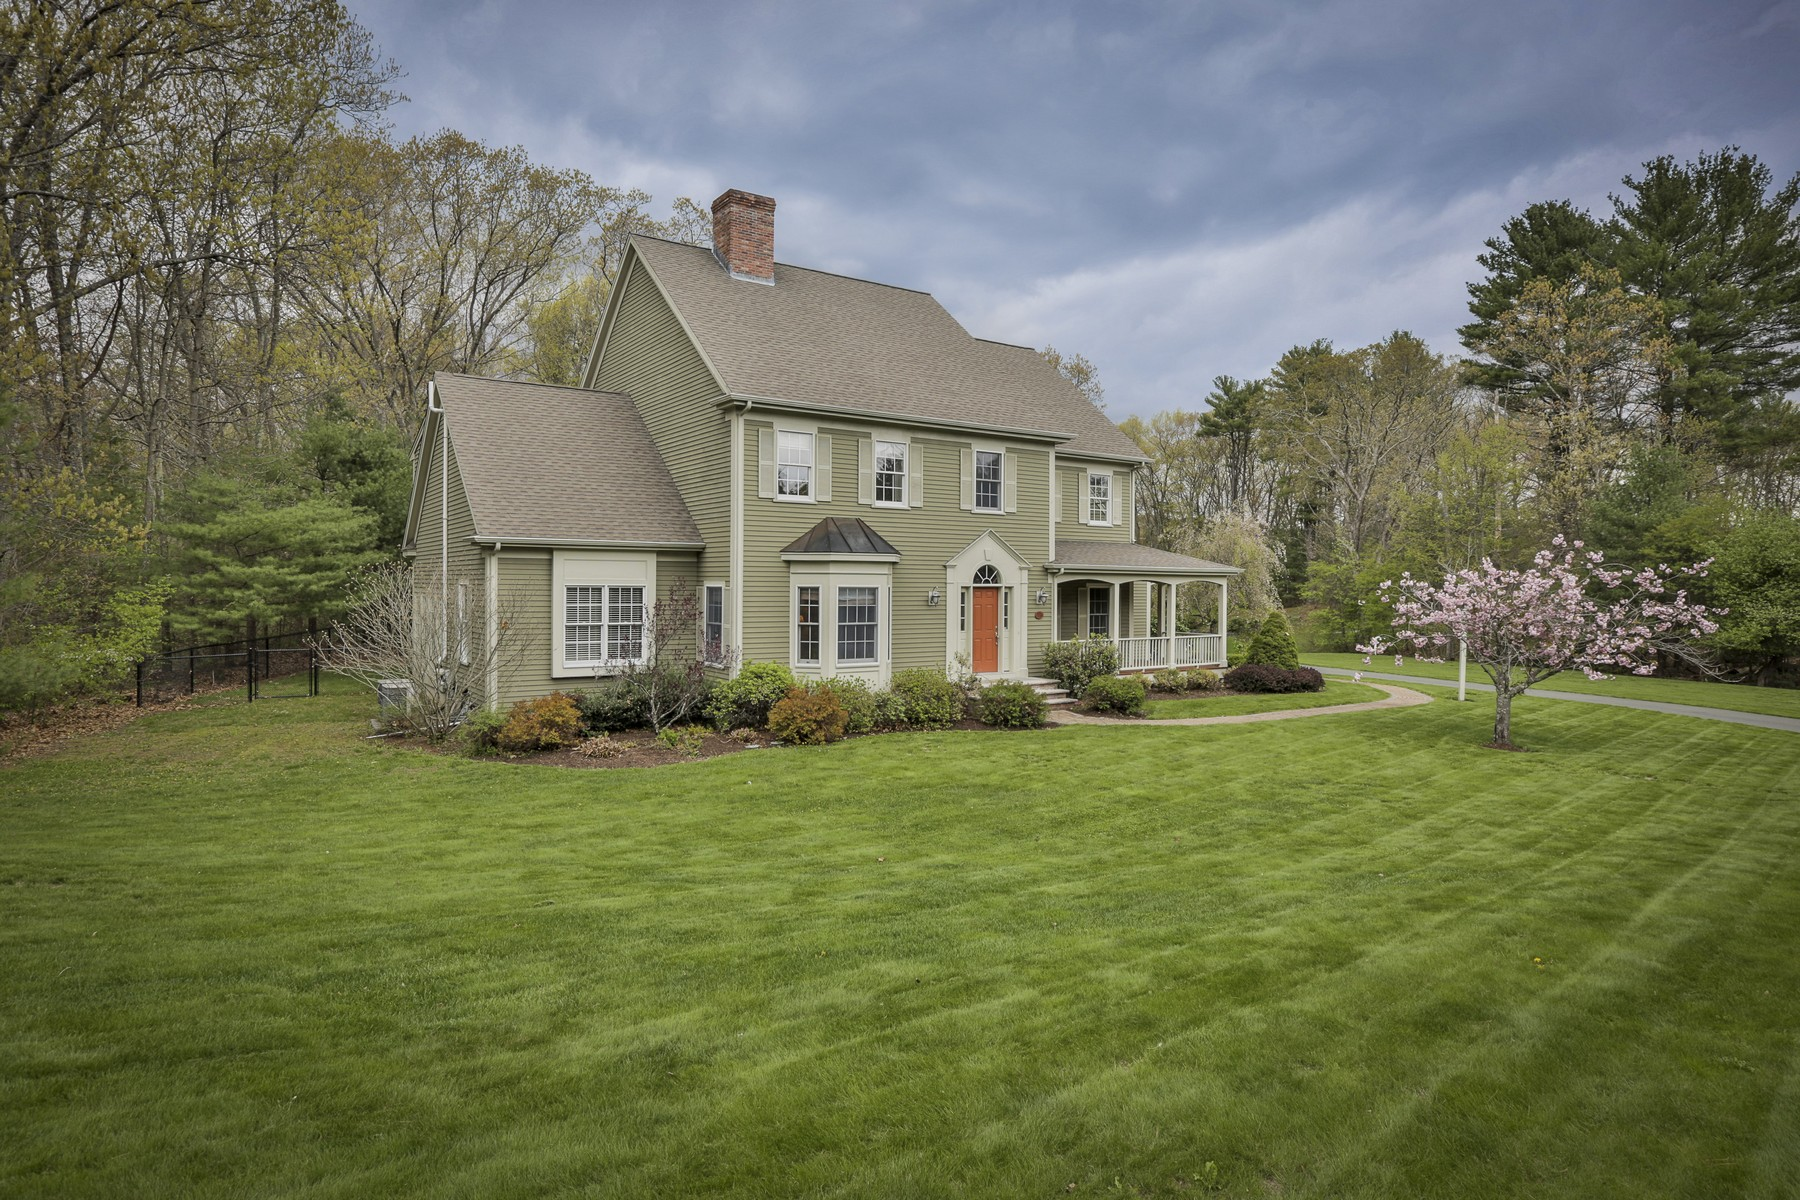 Maison unifamiliale pour l Vente à Refined East Boxford Colonial 27A Powderhouse Lane Boxford, Massachusetts, 01921 États-Unis